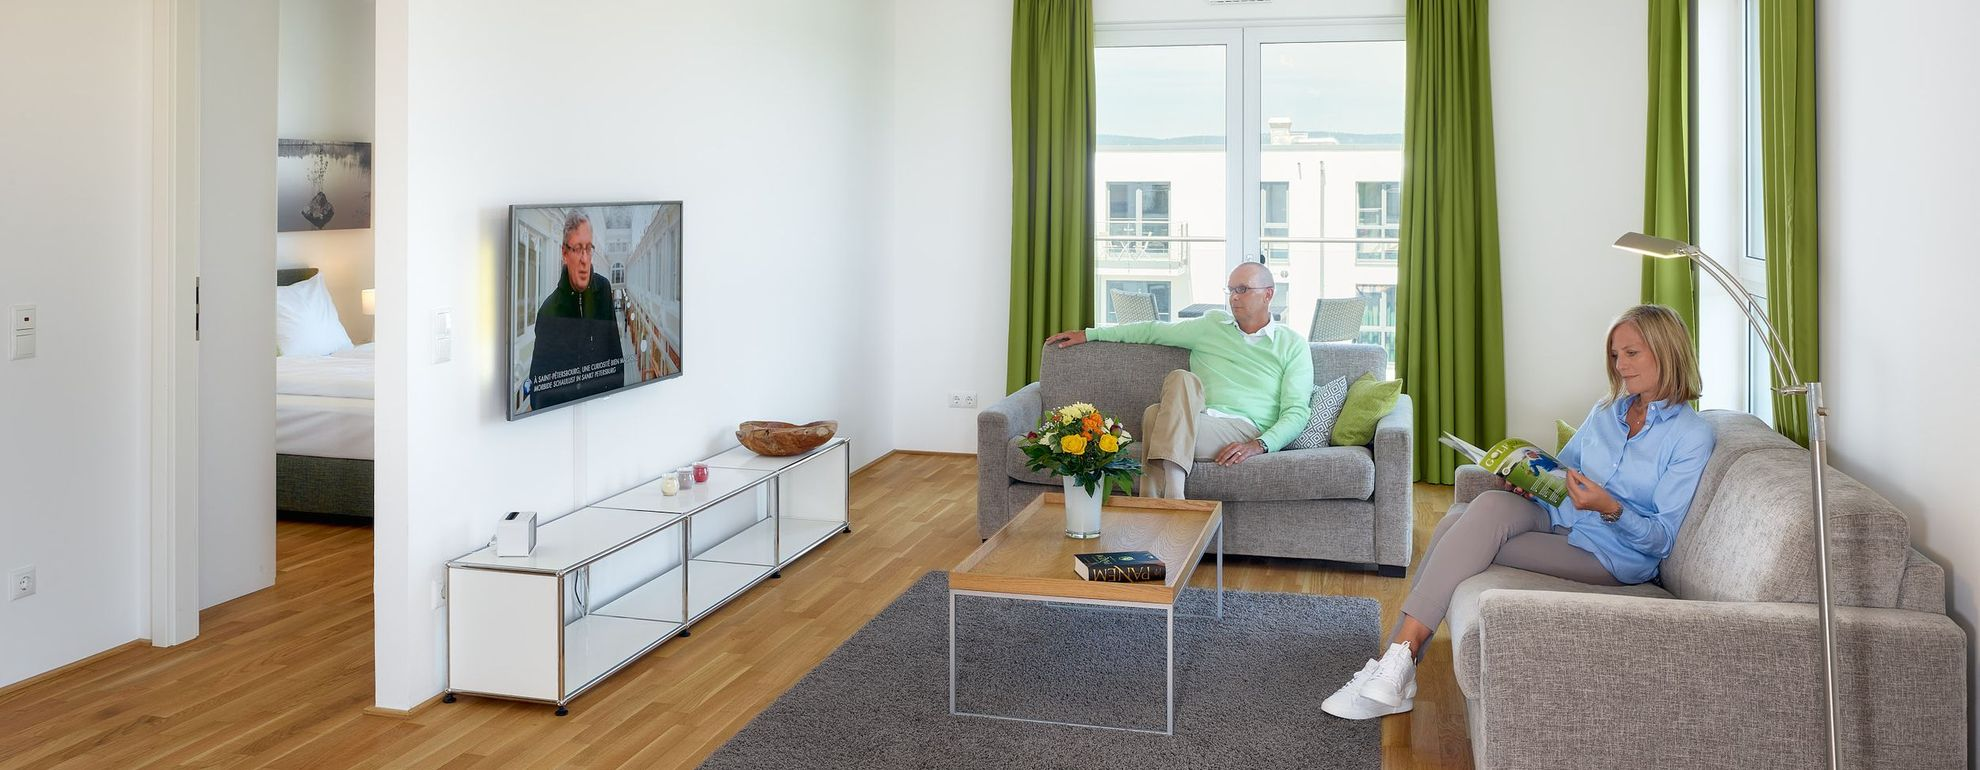 <div class=caption-wrap><div class=headline><p>The Aparthotel Parkallee in Mainz</p></div><br /><div class=teaser>Arrive and feel at home</div>